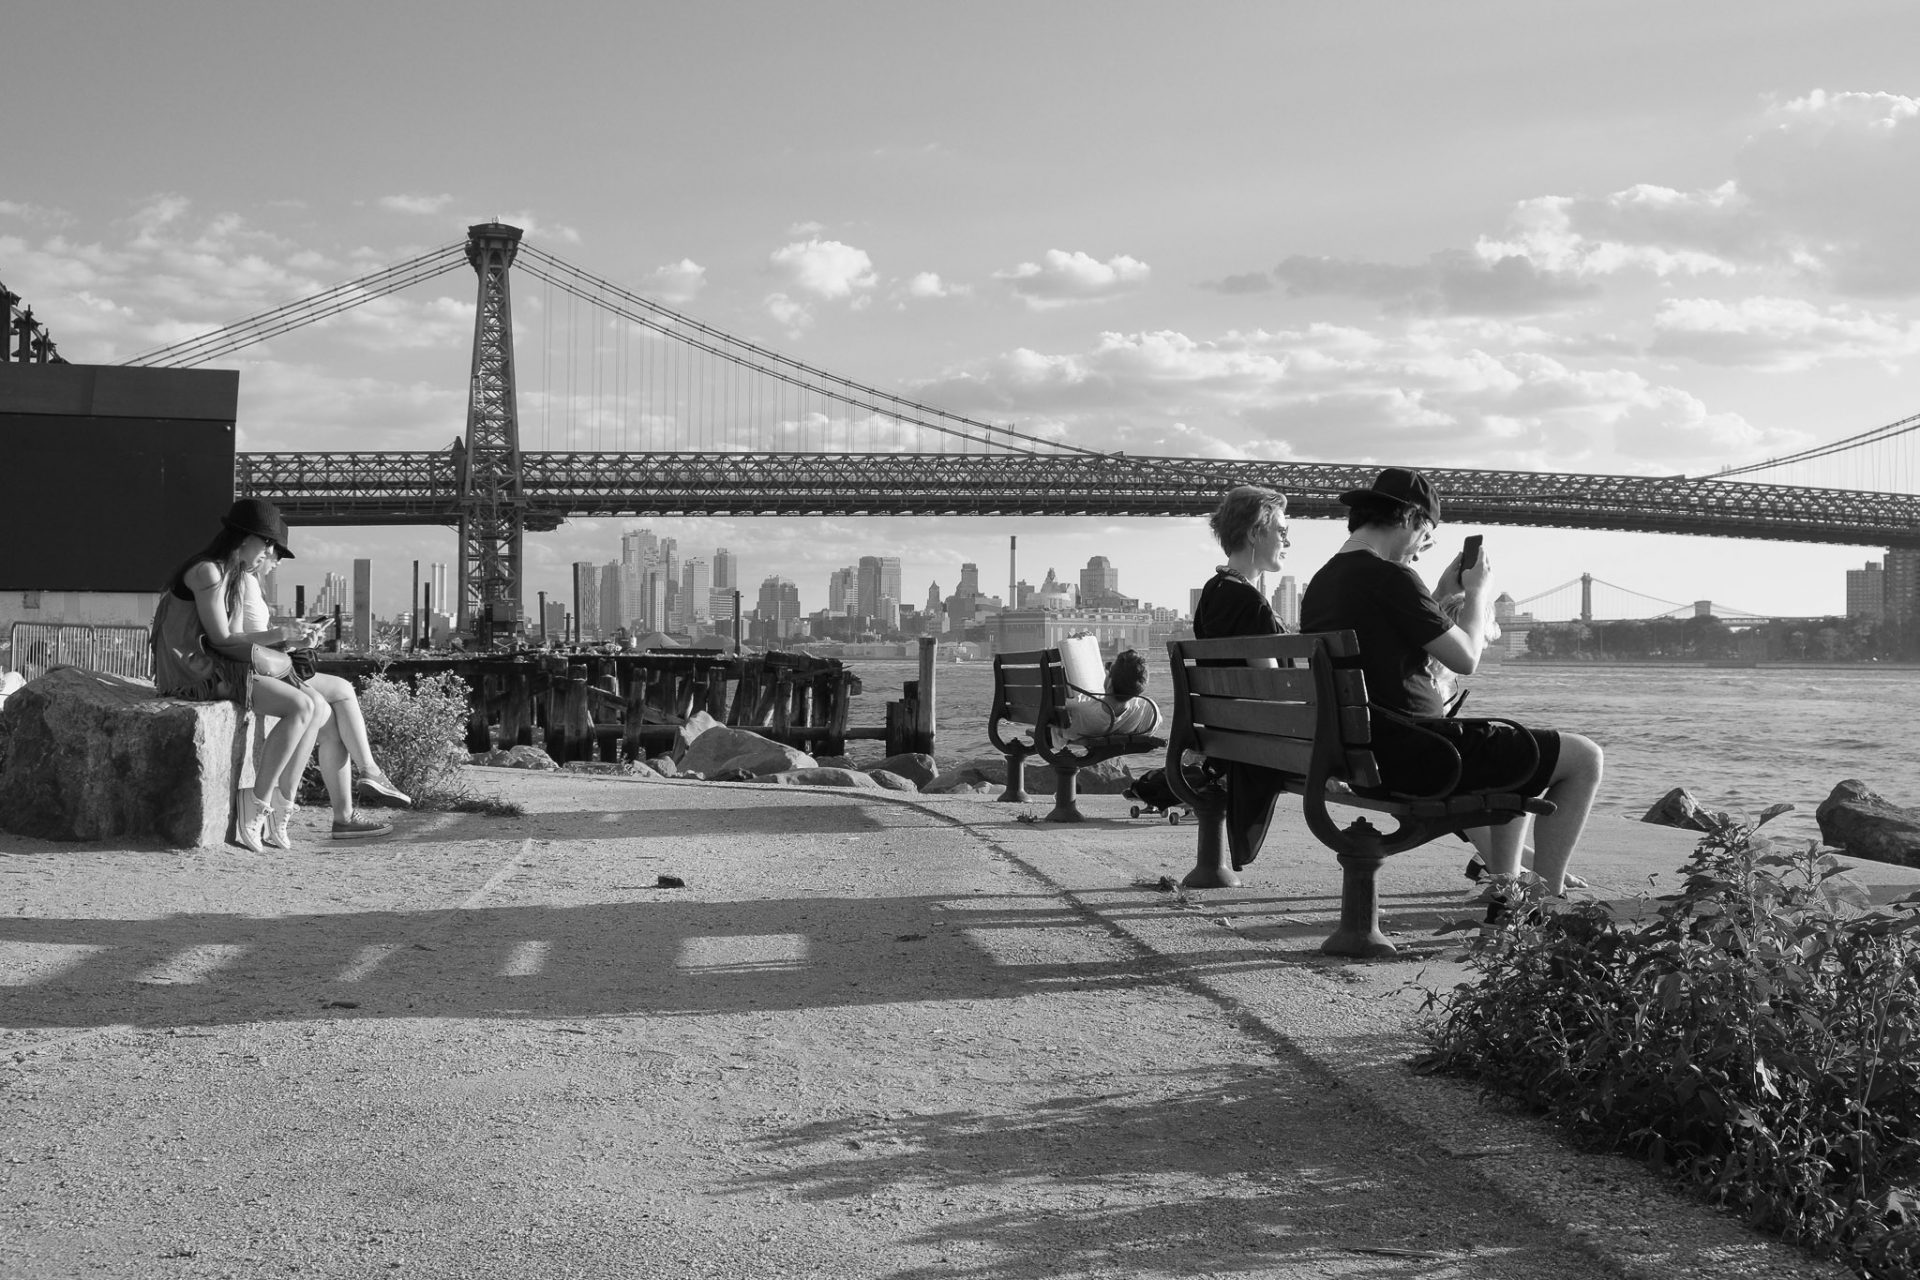 black and white photograph of Williamsburg, Brooklyn, near the river. the Williamsburg Bridge is visible in the background as a compositional element. there are two benches looking towards the river and towards Manhattan. on one bench a woman is sitting looking forward and a young man with a baseball cap backwards is looking at his phone. on the other bench a man is lying down reading a newspaper. he has a skateboard on the ground beside him. on the left side two people, maybe tourists, are sitting on a rock looking at their phones.